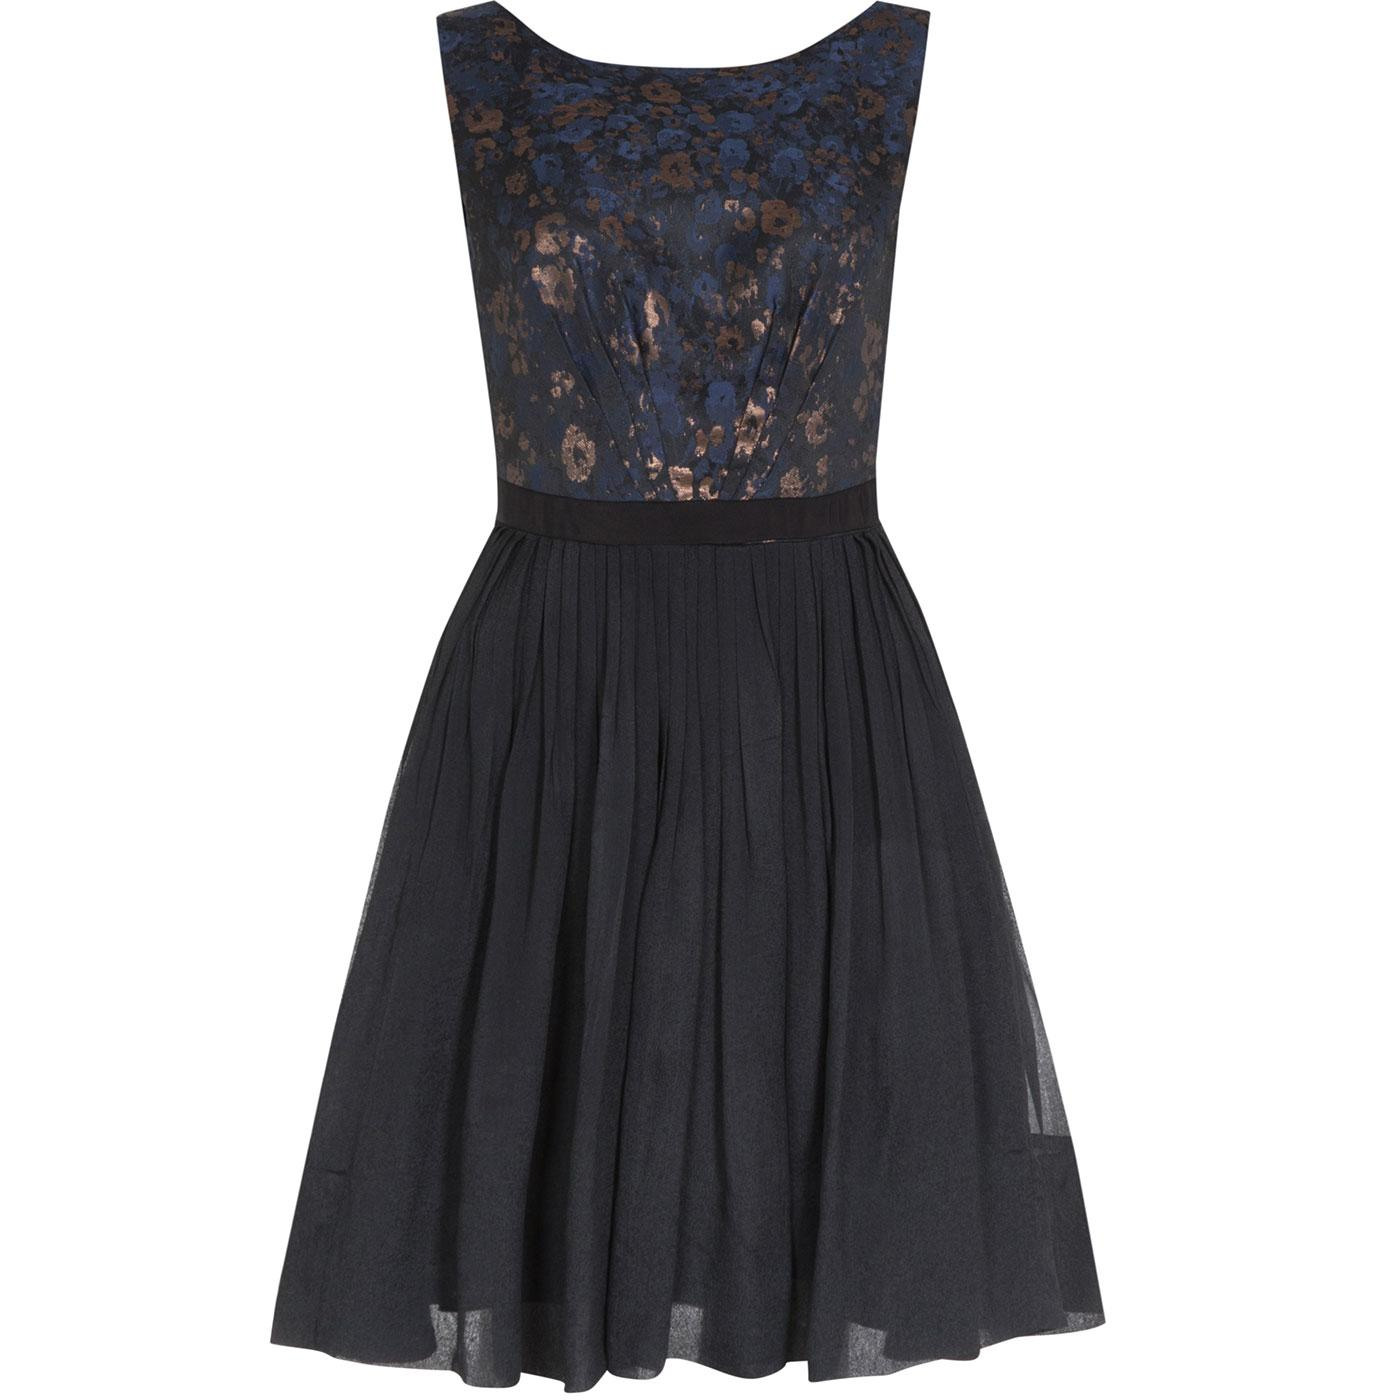 Abigail EMILY AND FIN Retro Floral Jacquard Dress